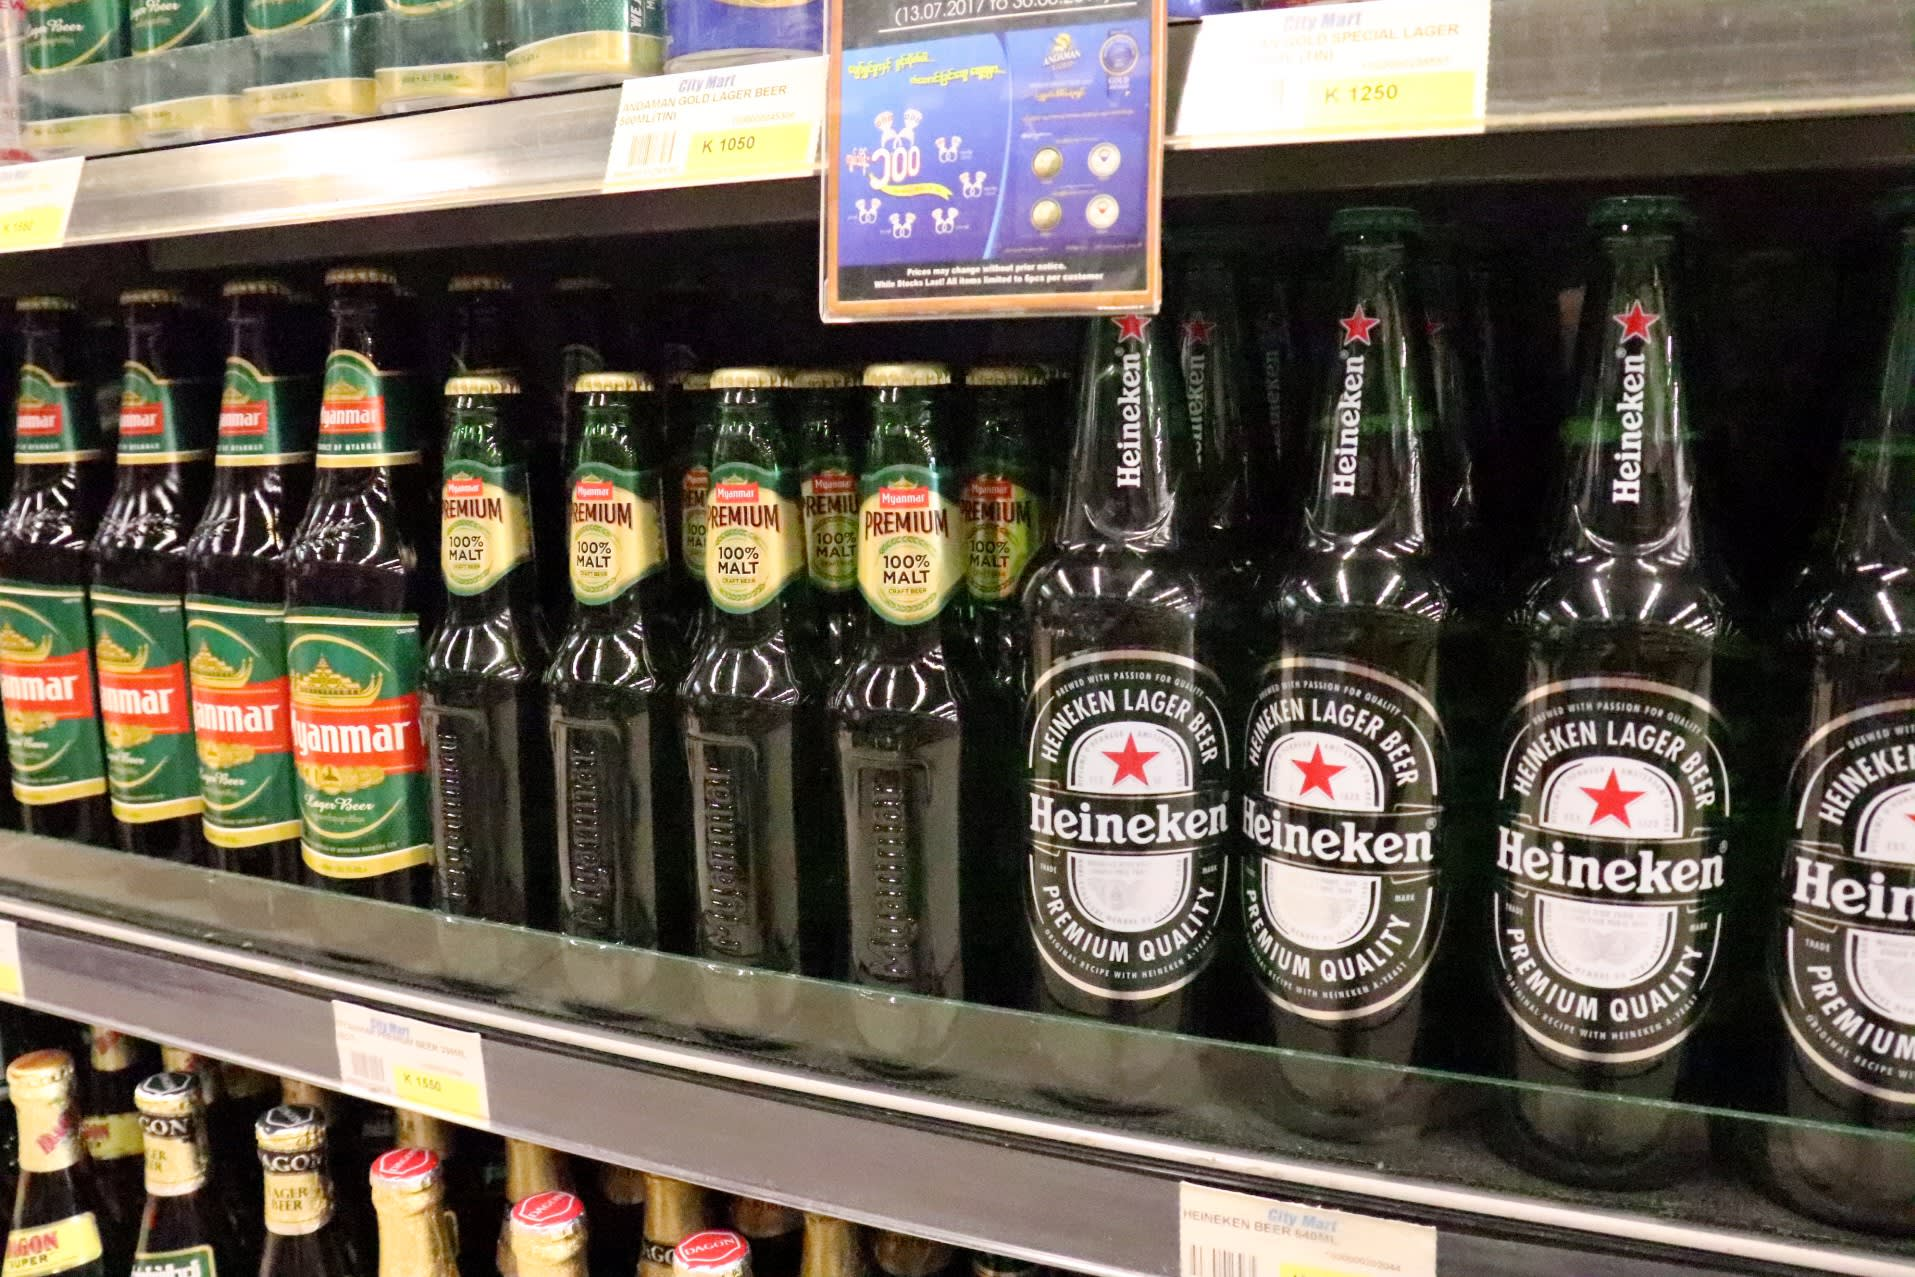 Fraser and Neave tries again to tap Myanmar's beer market